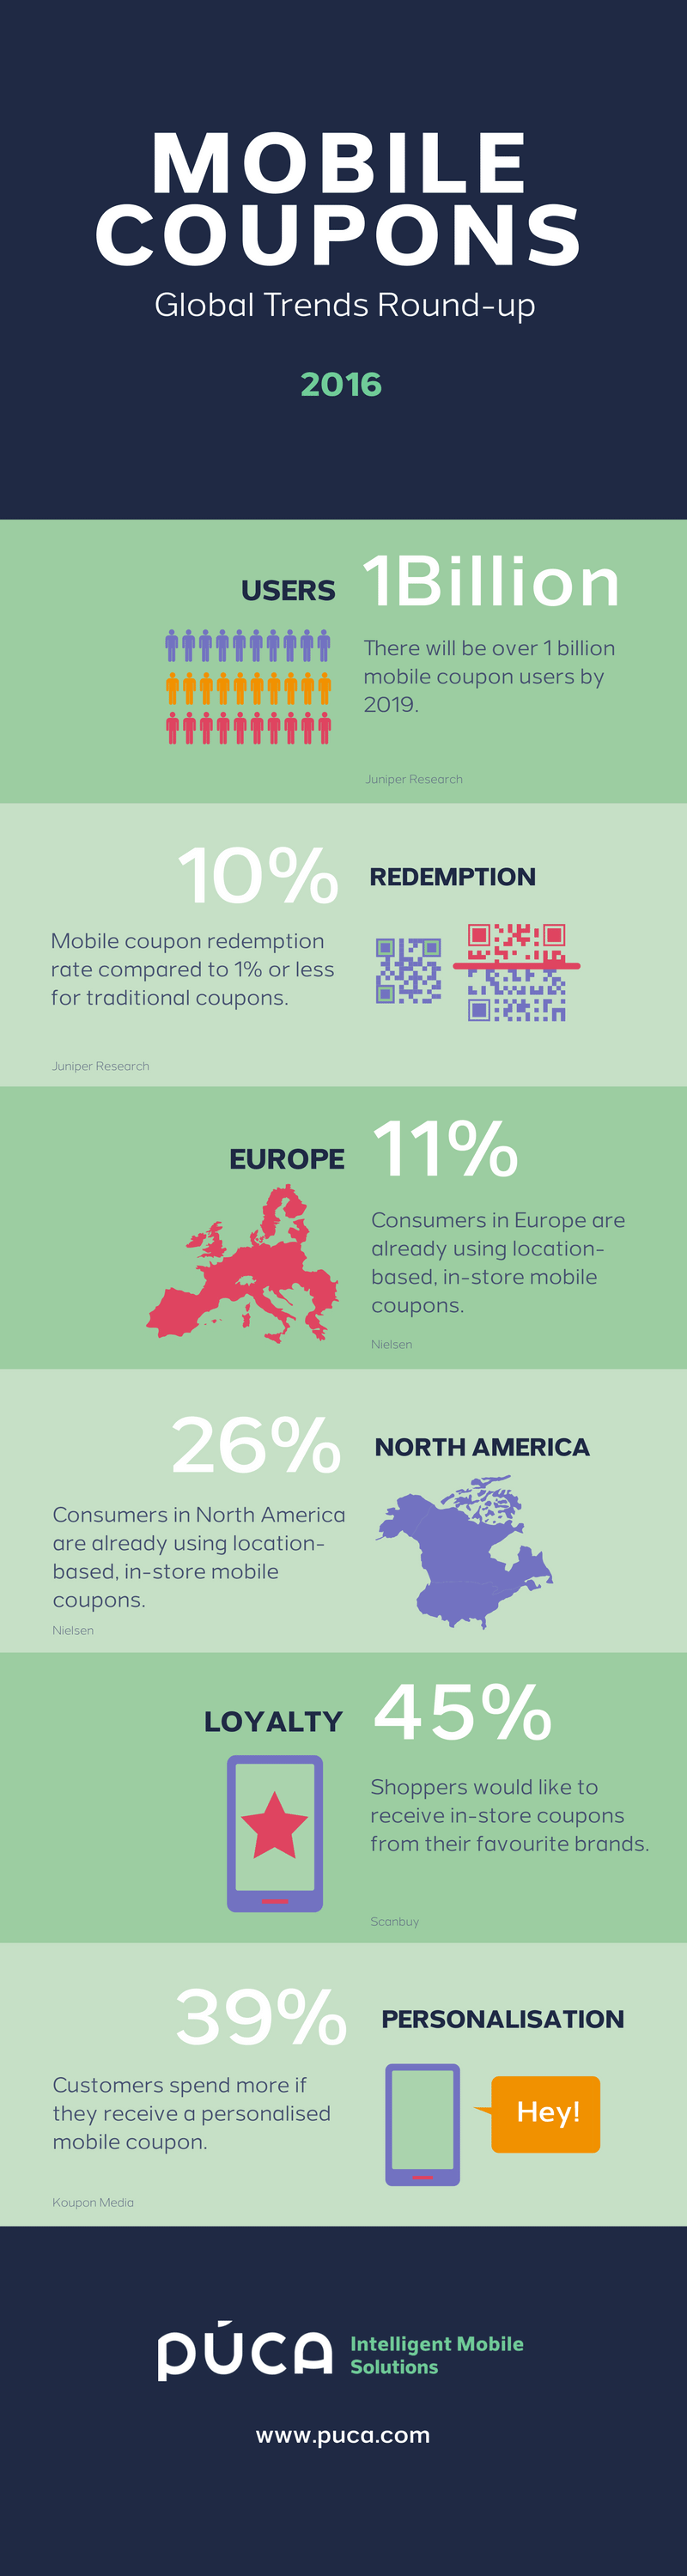 mobile-coupons-infographic-2016-sm